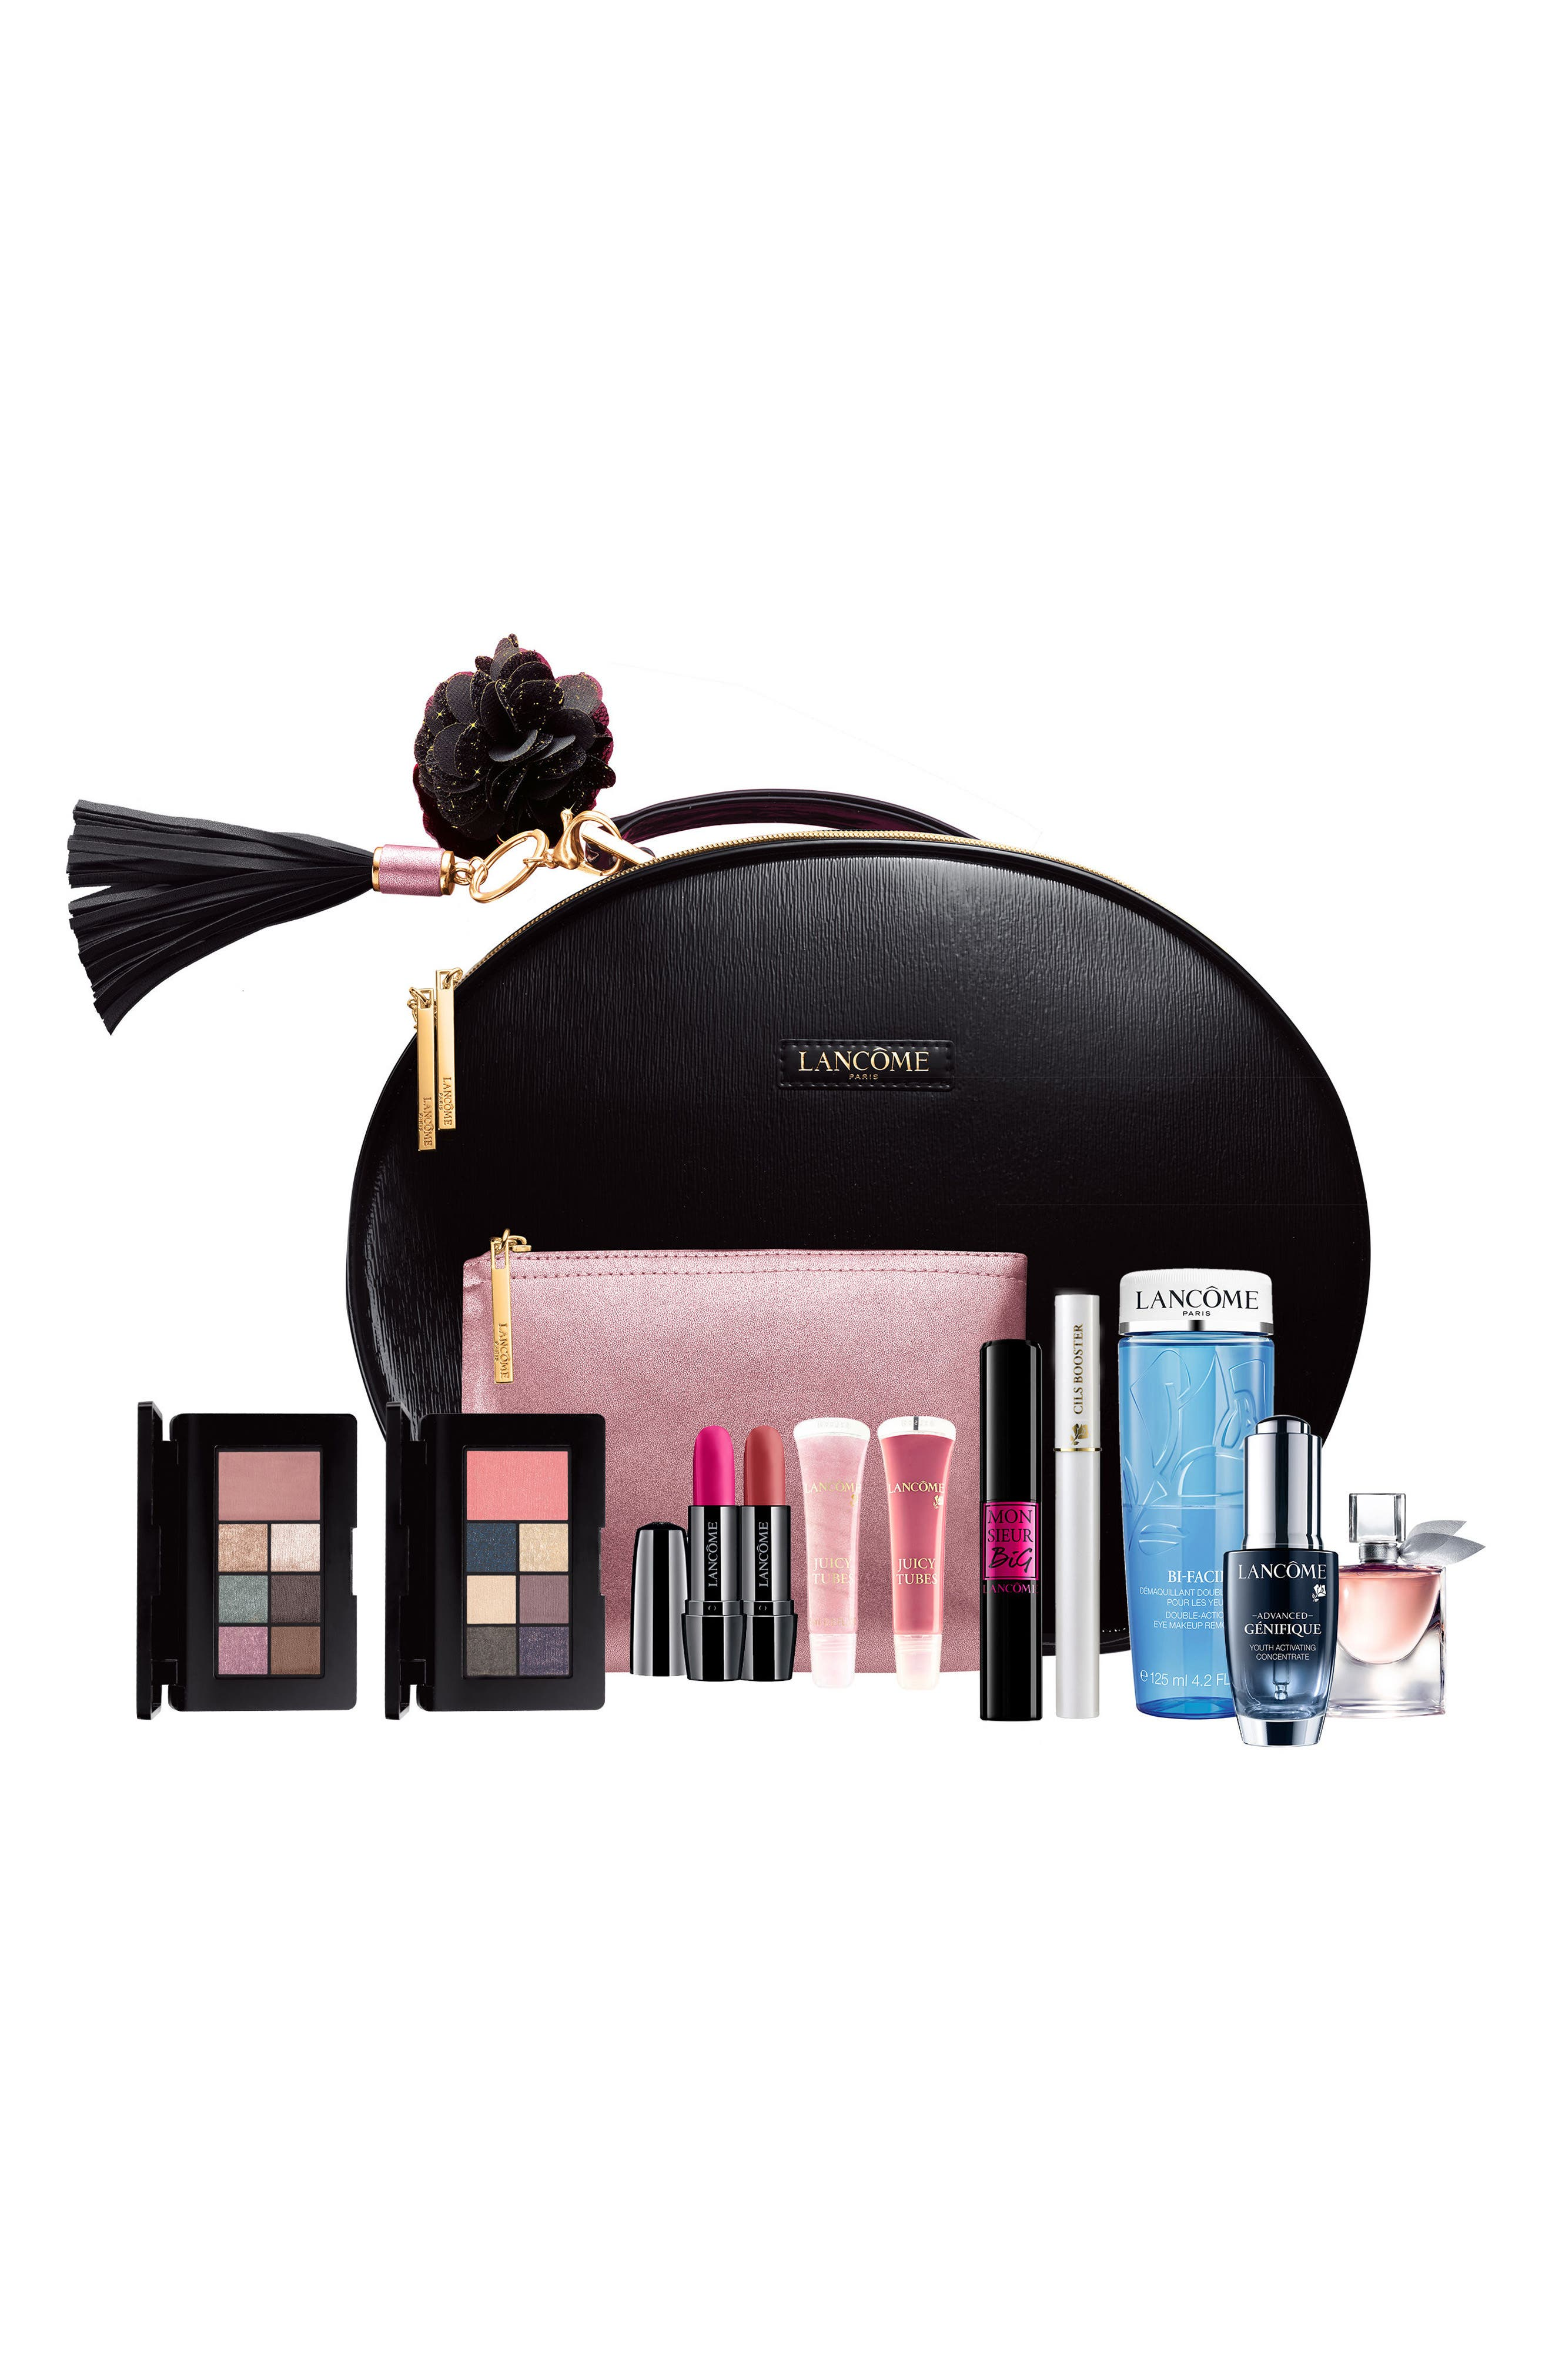 claire 39 s heart makeup kit. lancôme holiday beauty box purchase with any ($350 value) claire 39 s heart makeup kit